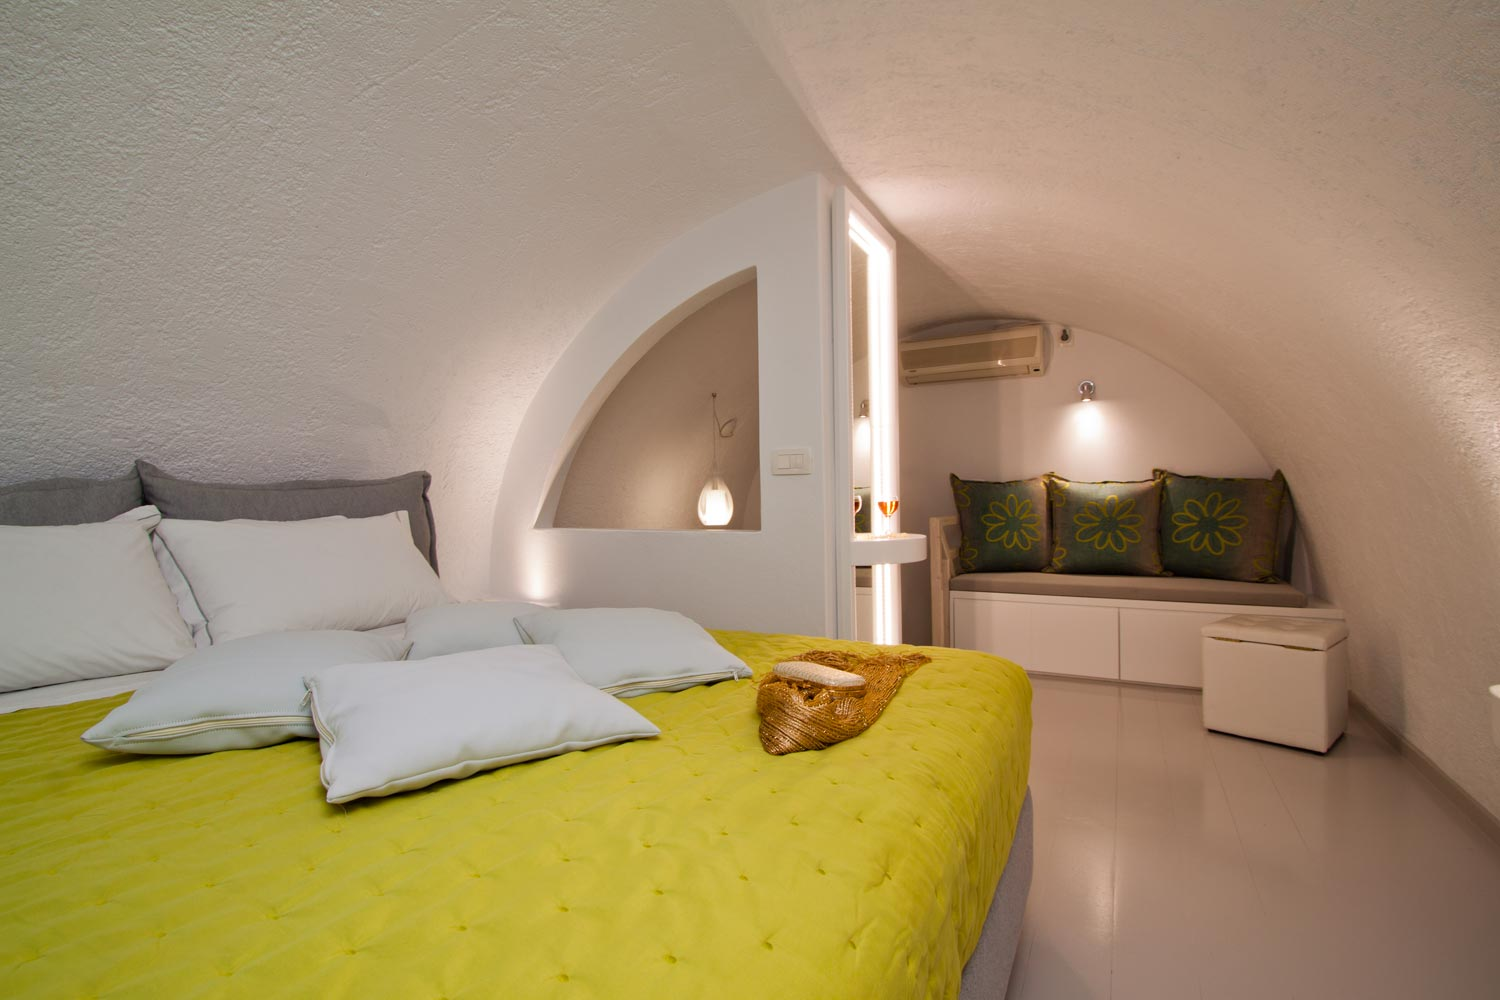 nemesis-accommodation-santorini-island-greece-studio-room6